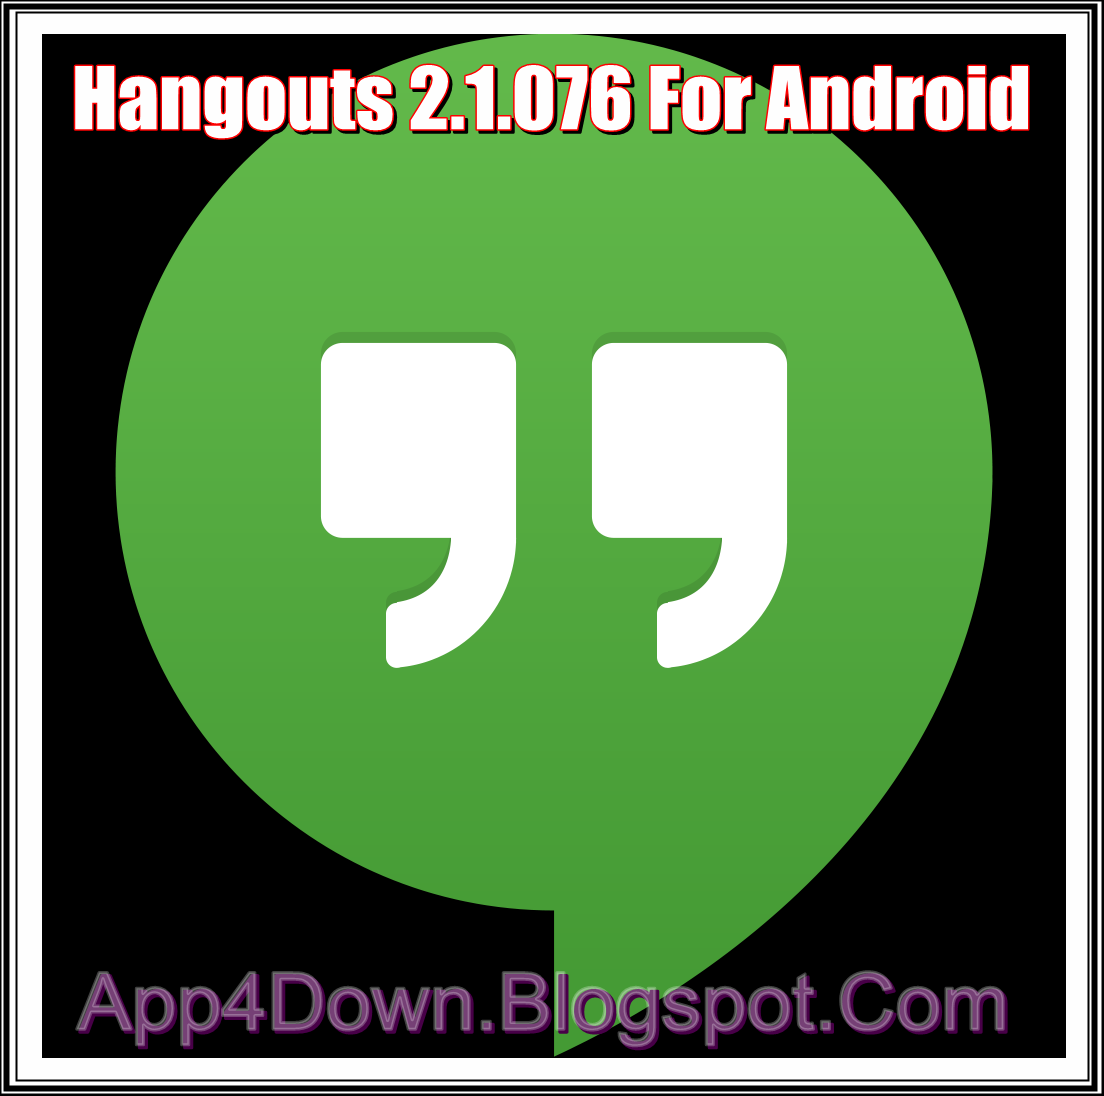 Download Hangouts 2.1.076 For Android APK [APP]